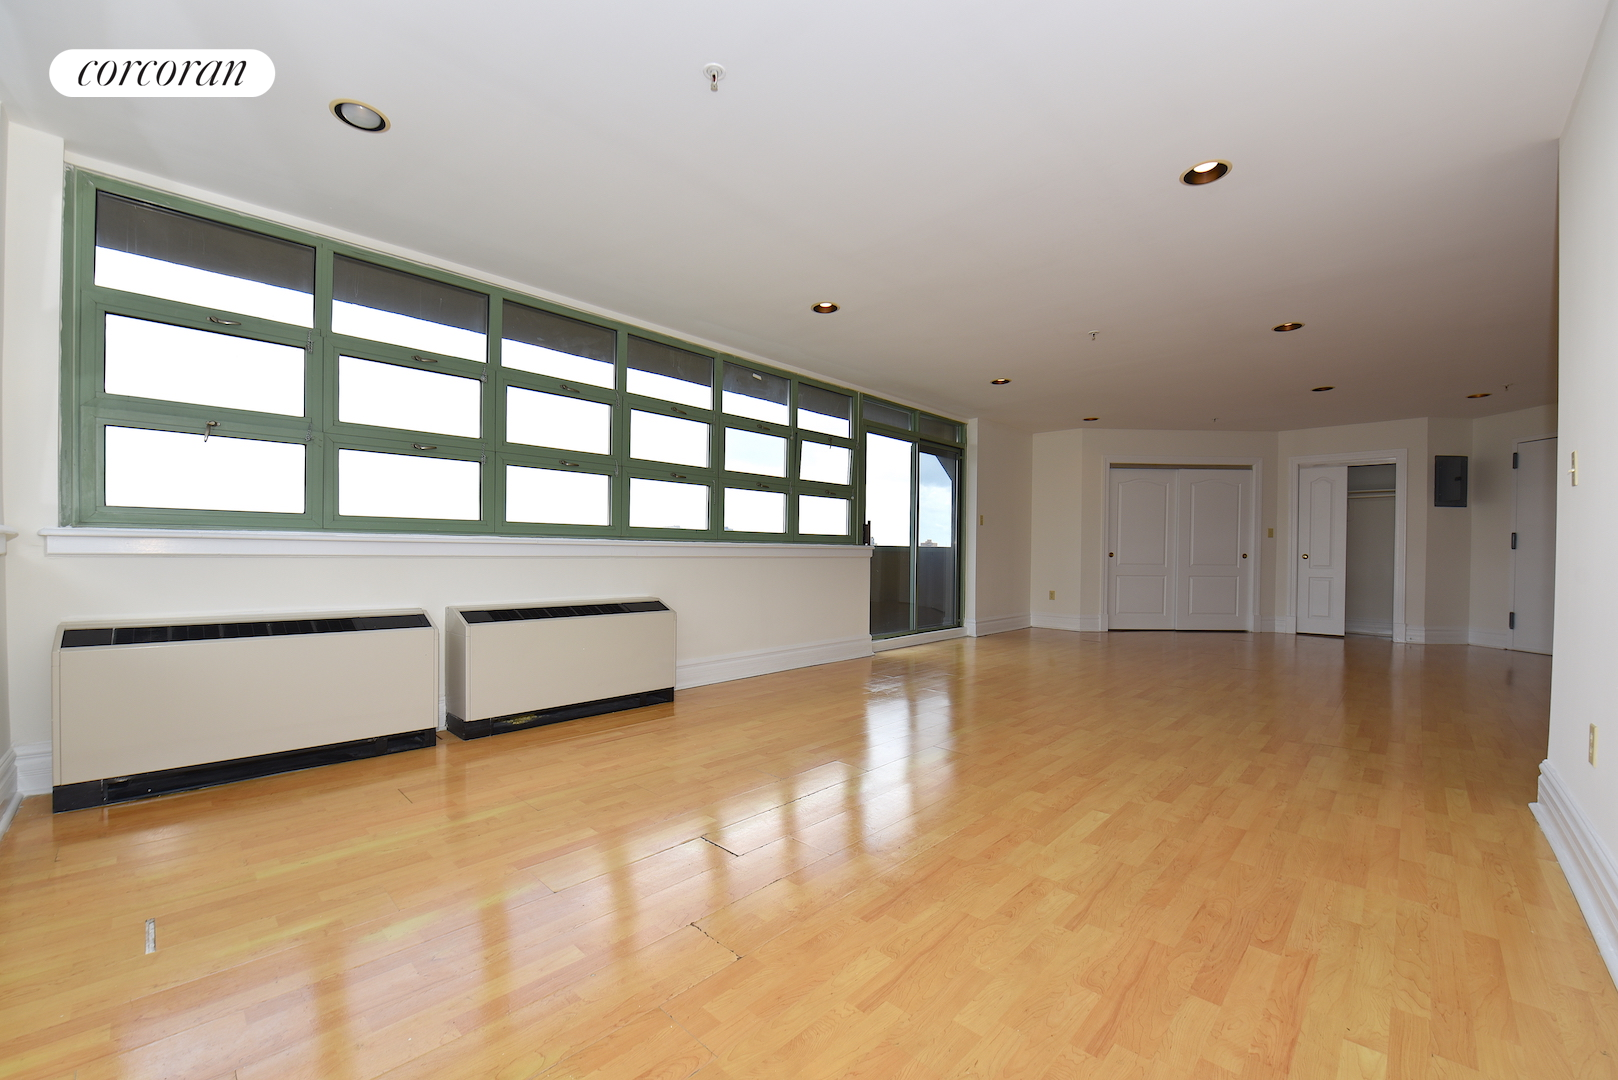 Corcoran 19 19 24th Avenue Apt R414 Astoria Rentals